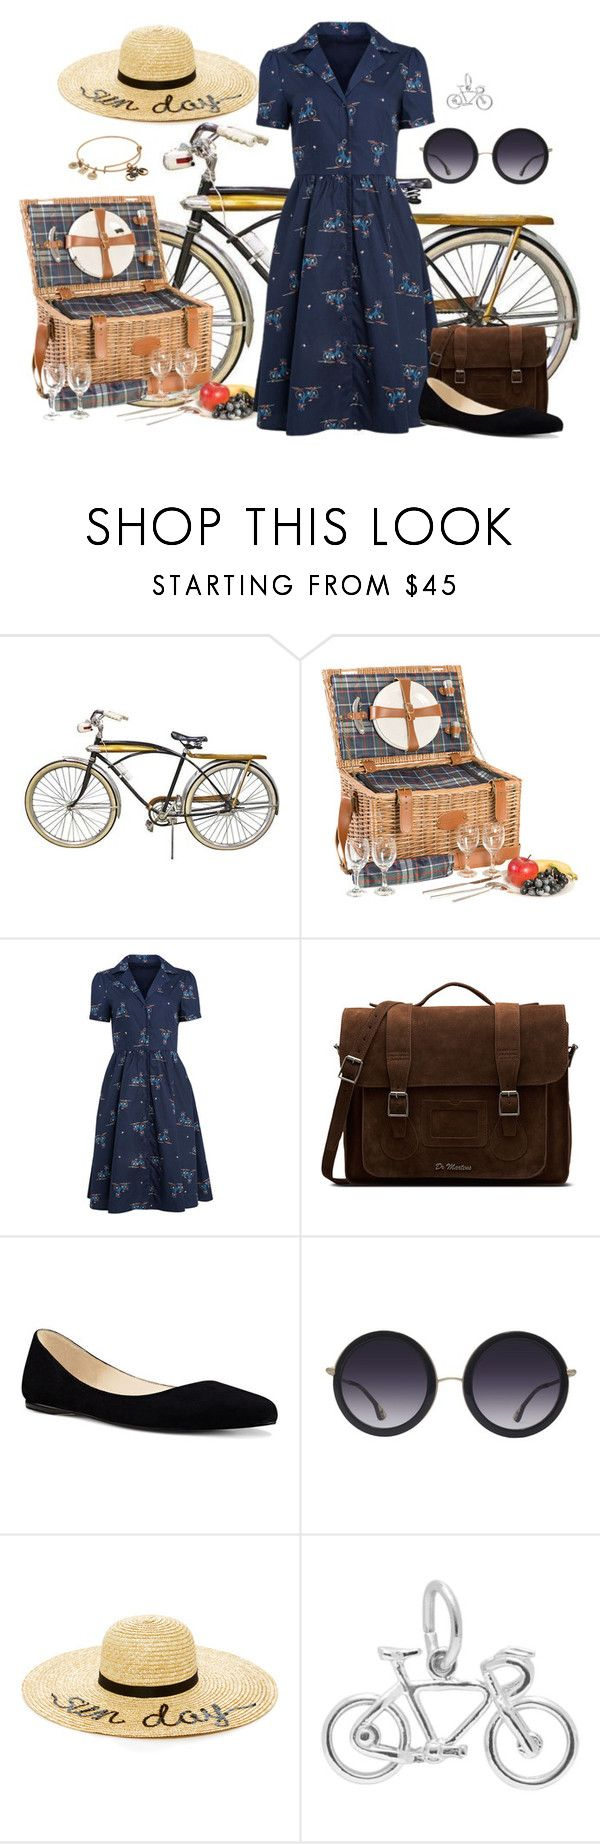 """Sunday Bike Ride"" by lily-mitchell ❤ liked on Polyvore featuring Les Jardins de la Comtesse, Dr. Martens, Nine West, Alice + Olivia, Eugenia Kim and Alex and Ani"